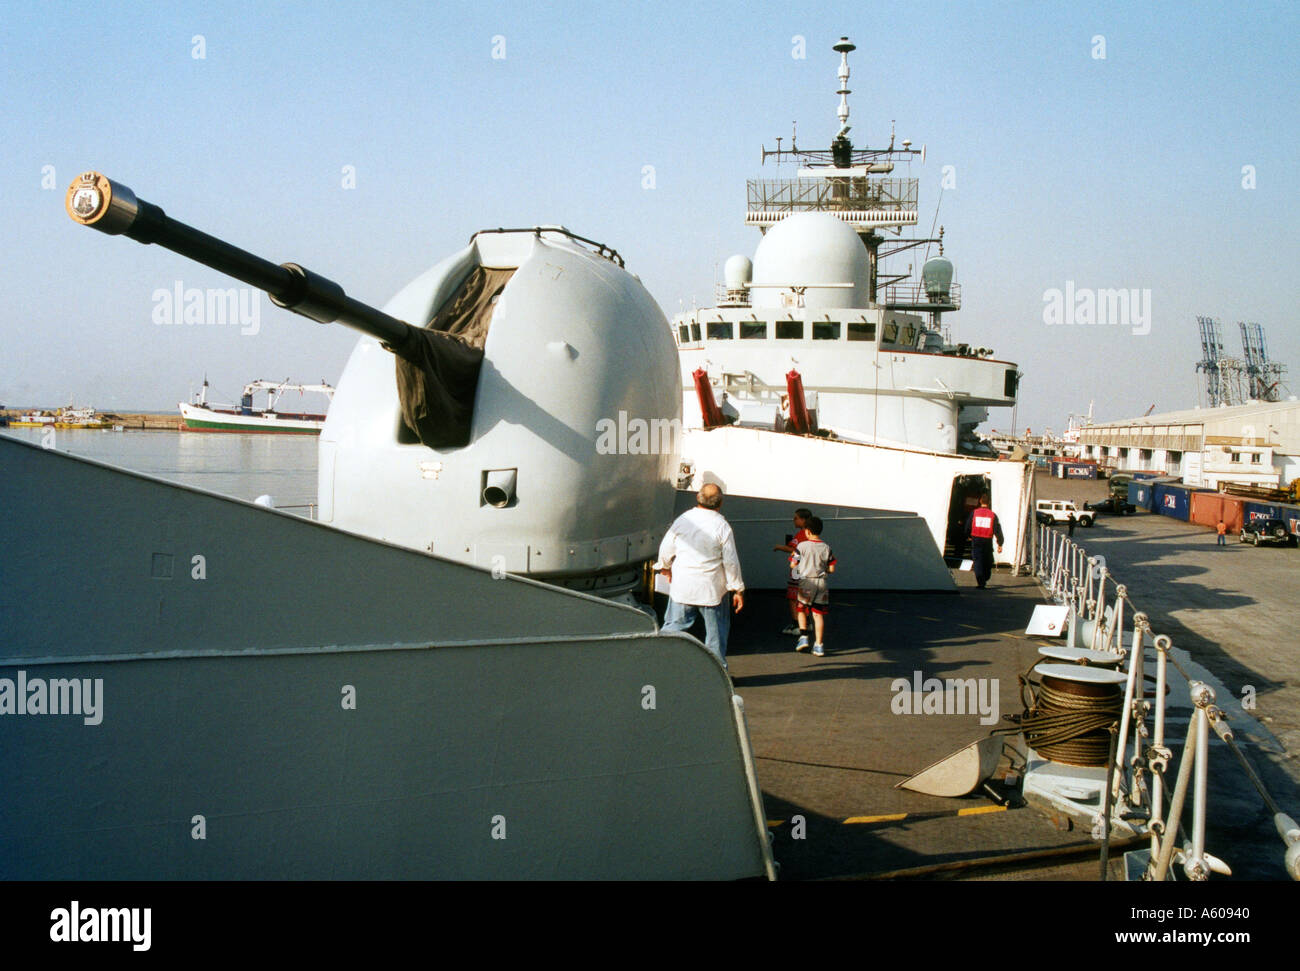 114mm gun hms edinburgh royal navy warship visit to beirut harbour lebanon stock image